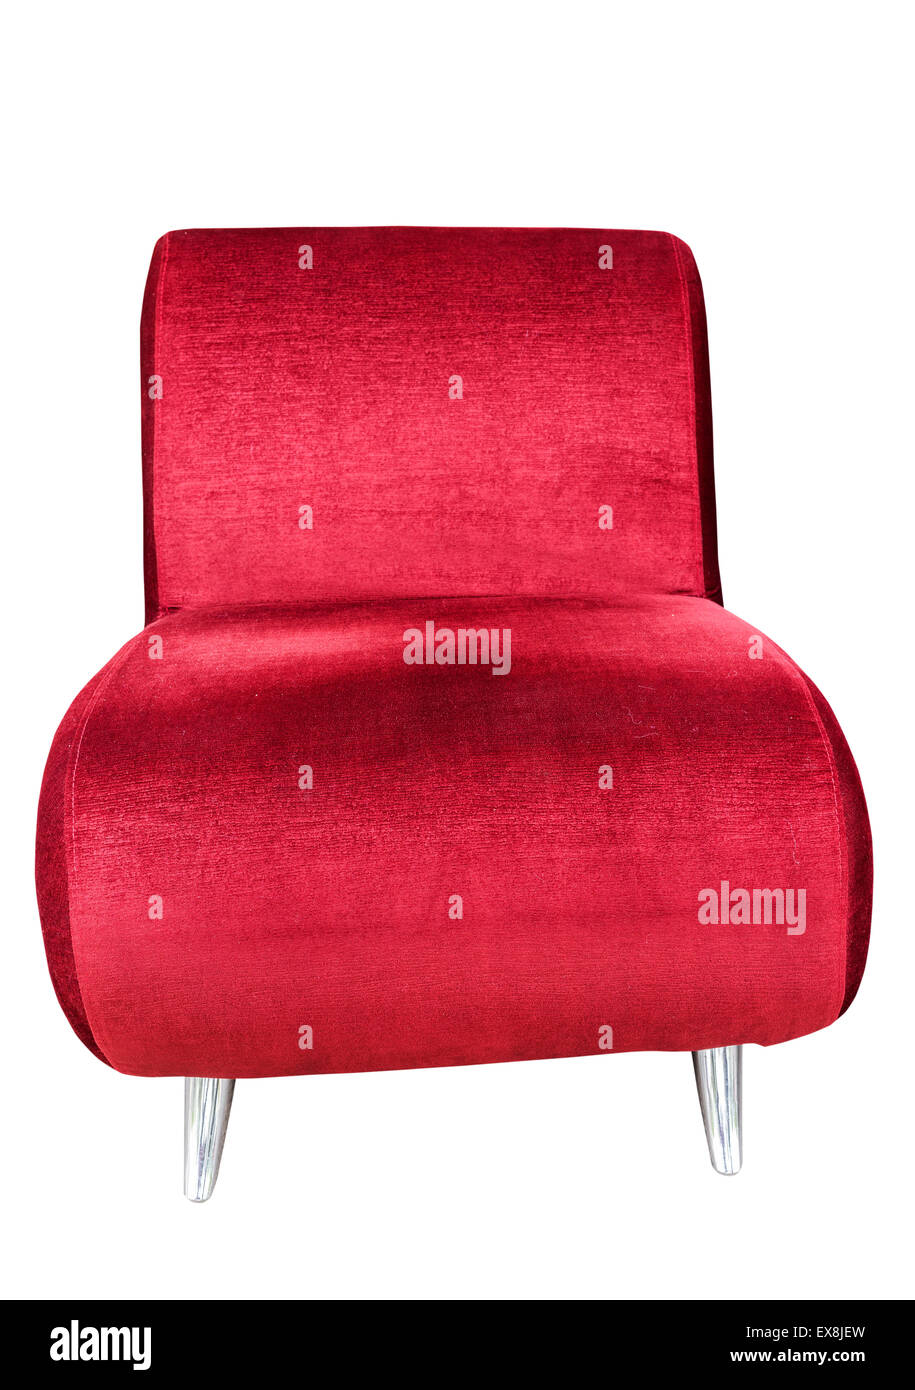 Red sofa seat isolated on white background with clipping path - Stock Image